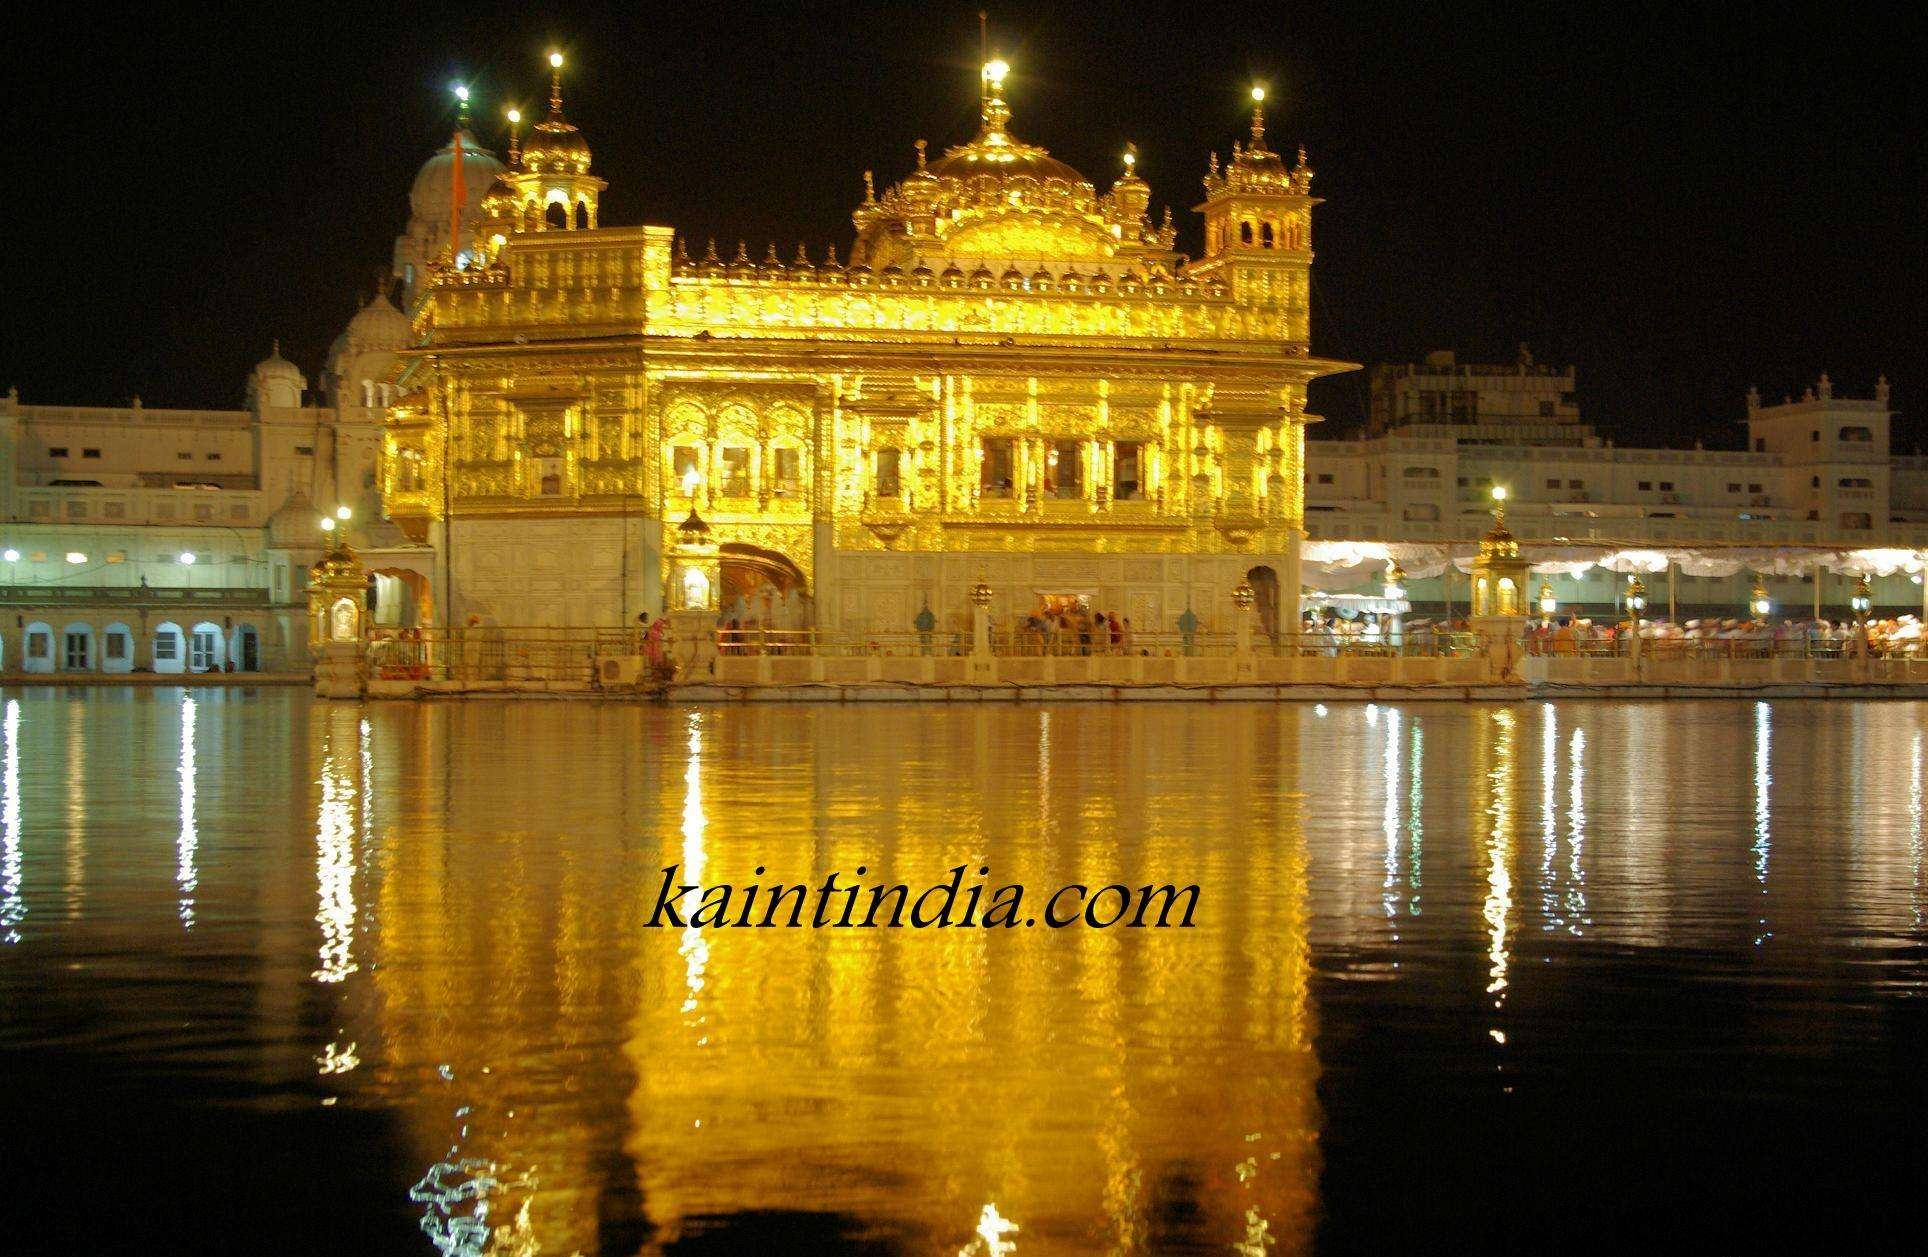 Godly Wallpaper Quotes Download Harmandir Sahib Wallpapers Free Download Gallery